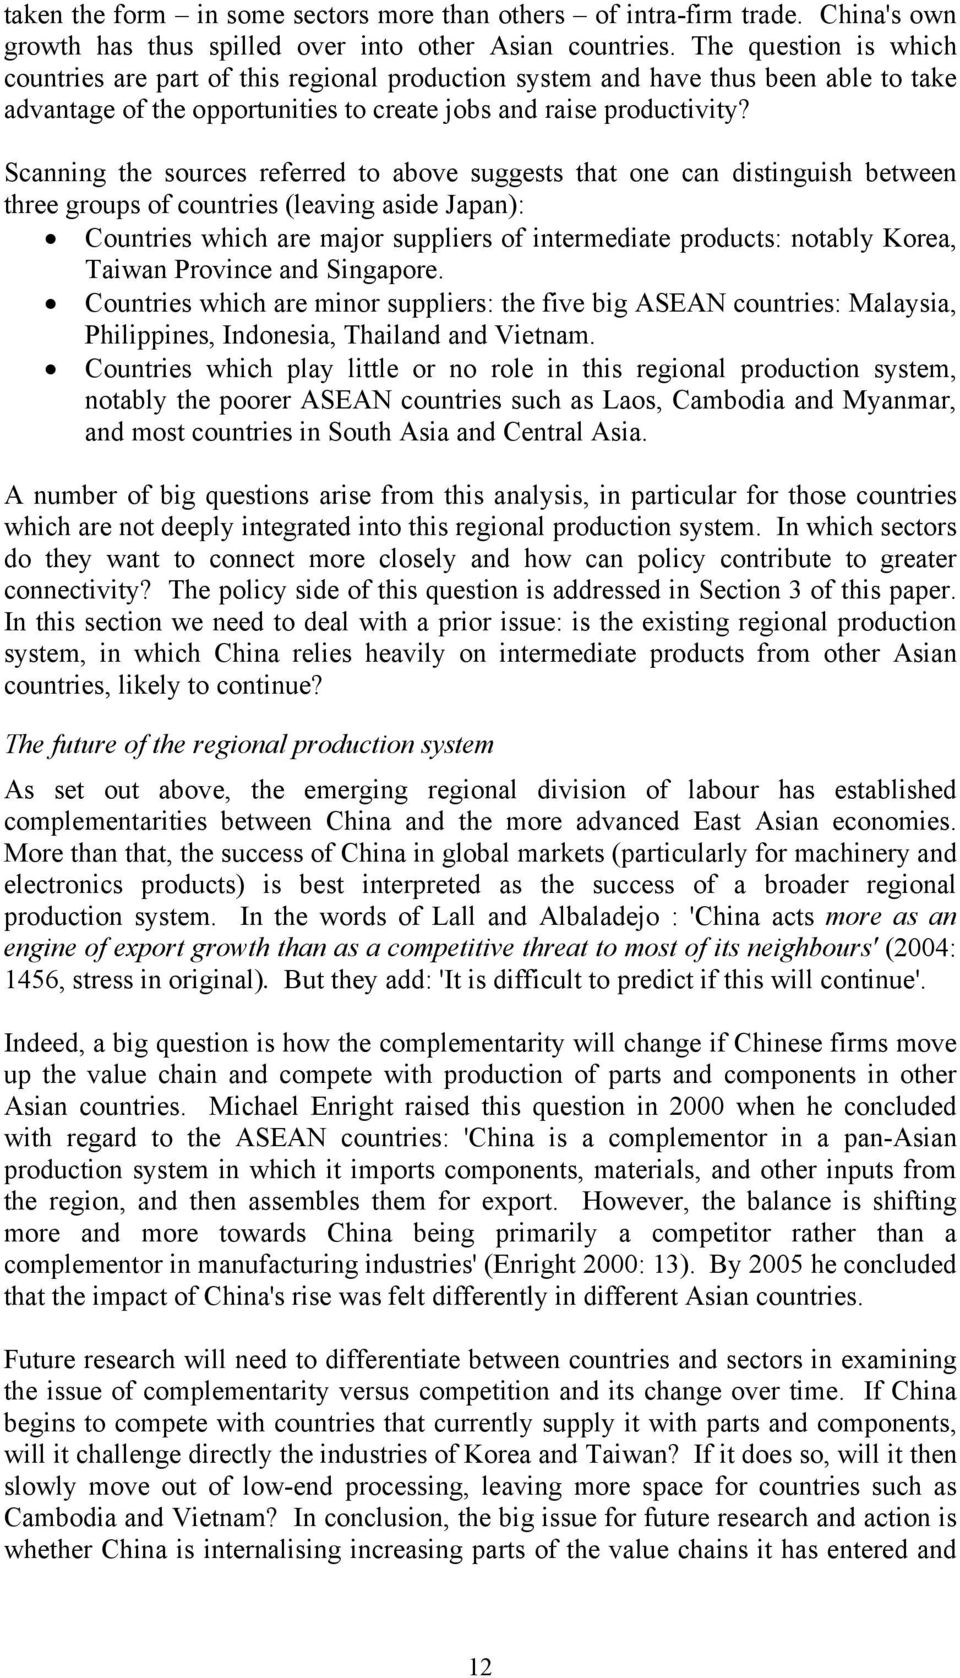 Scanning the sources referred to above suggests that one can distinguish between three groups of countries (leaving aside Japan): Countries which are major suppliers of intermediate products: notably